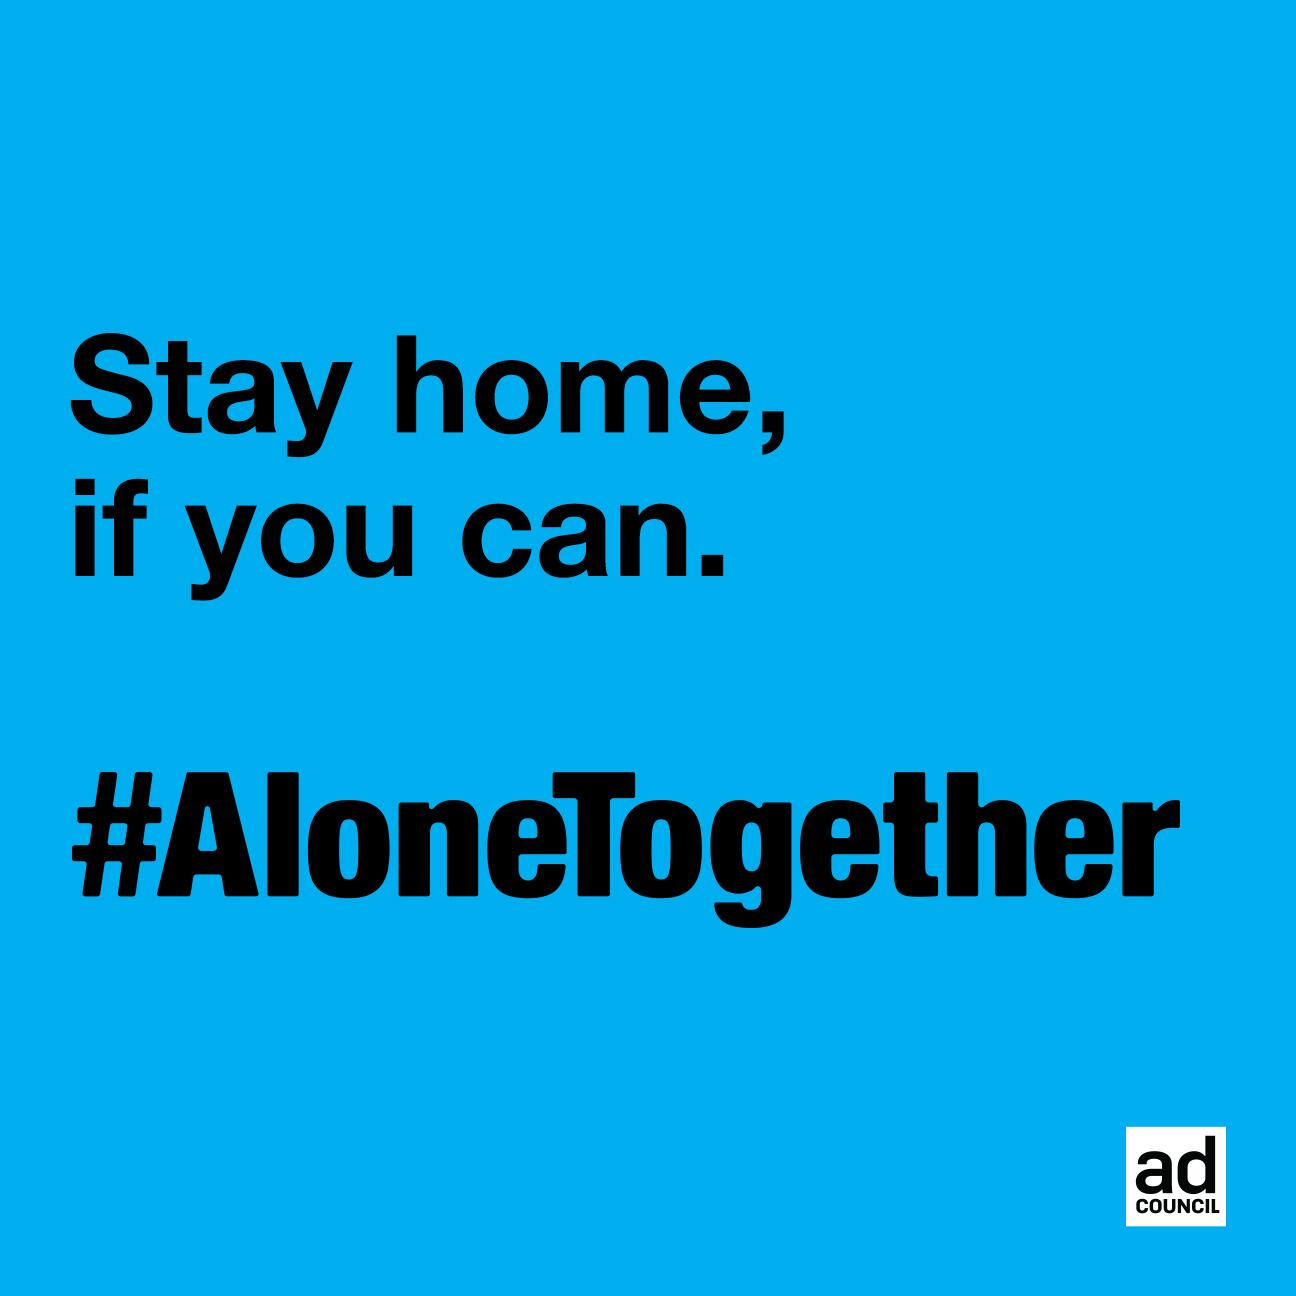 Stay home, if you can. #AloneTogether